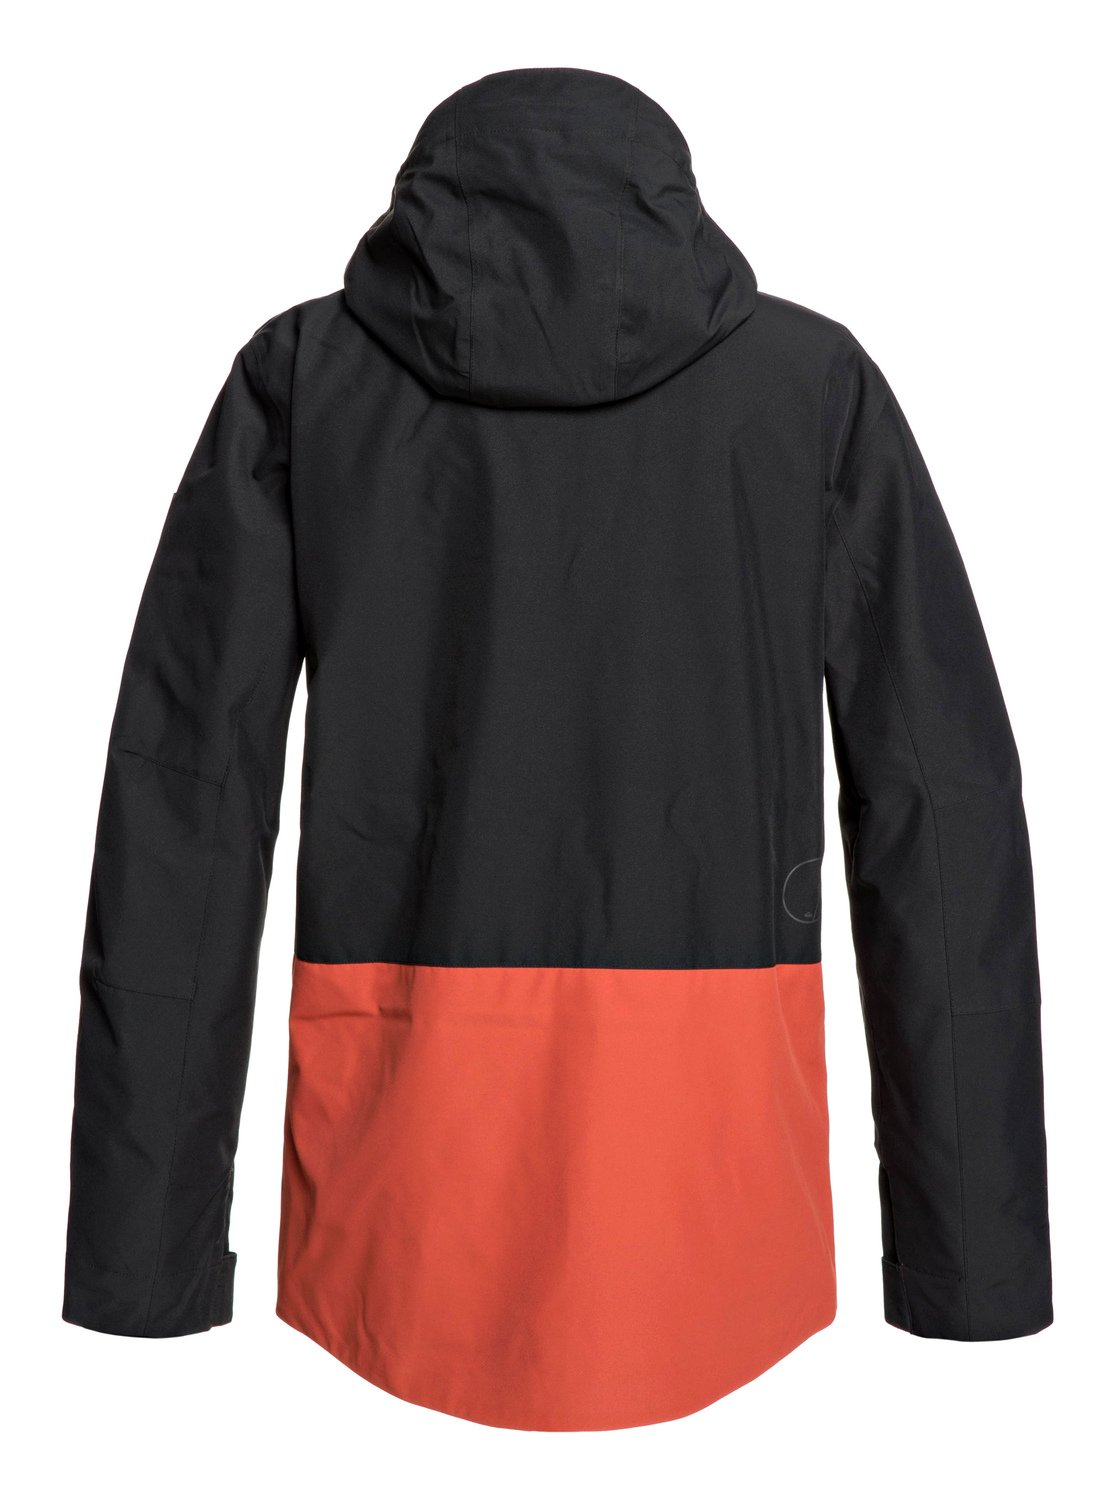 Quiksilver Travis Rice Ambition Jacket - 88 Gear